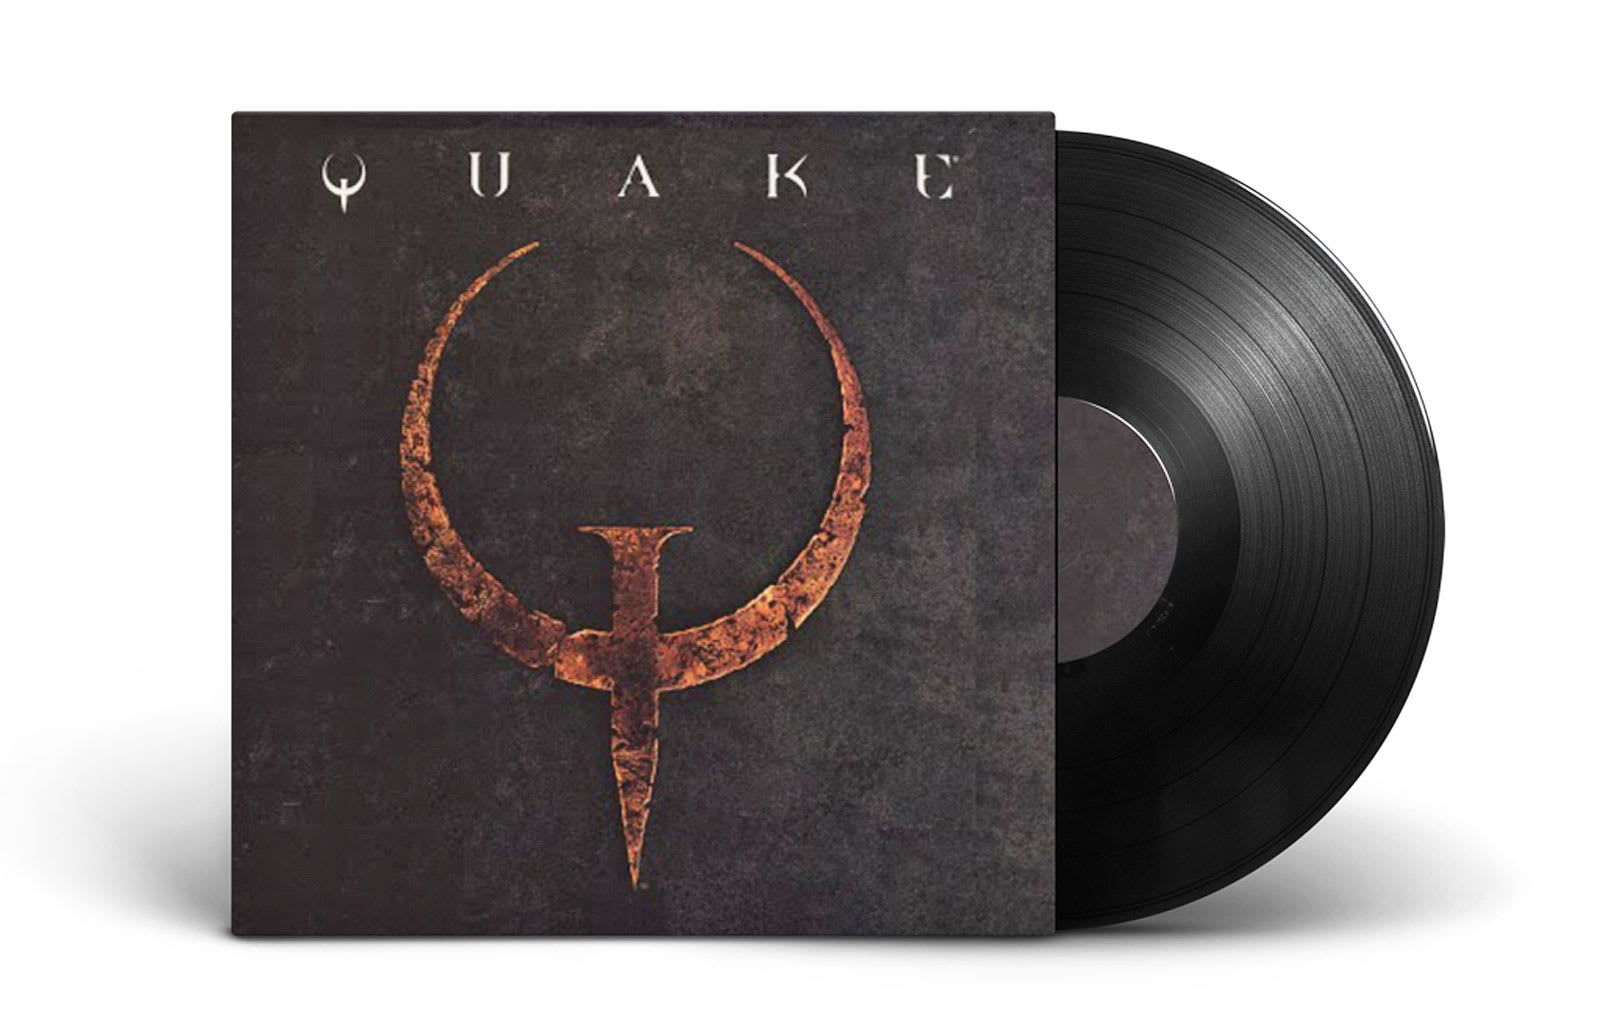 Trent Reznor blows dust off the 'Quake' score for vinyl reissue